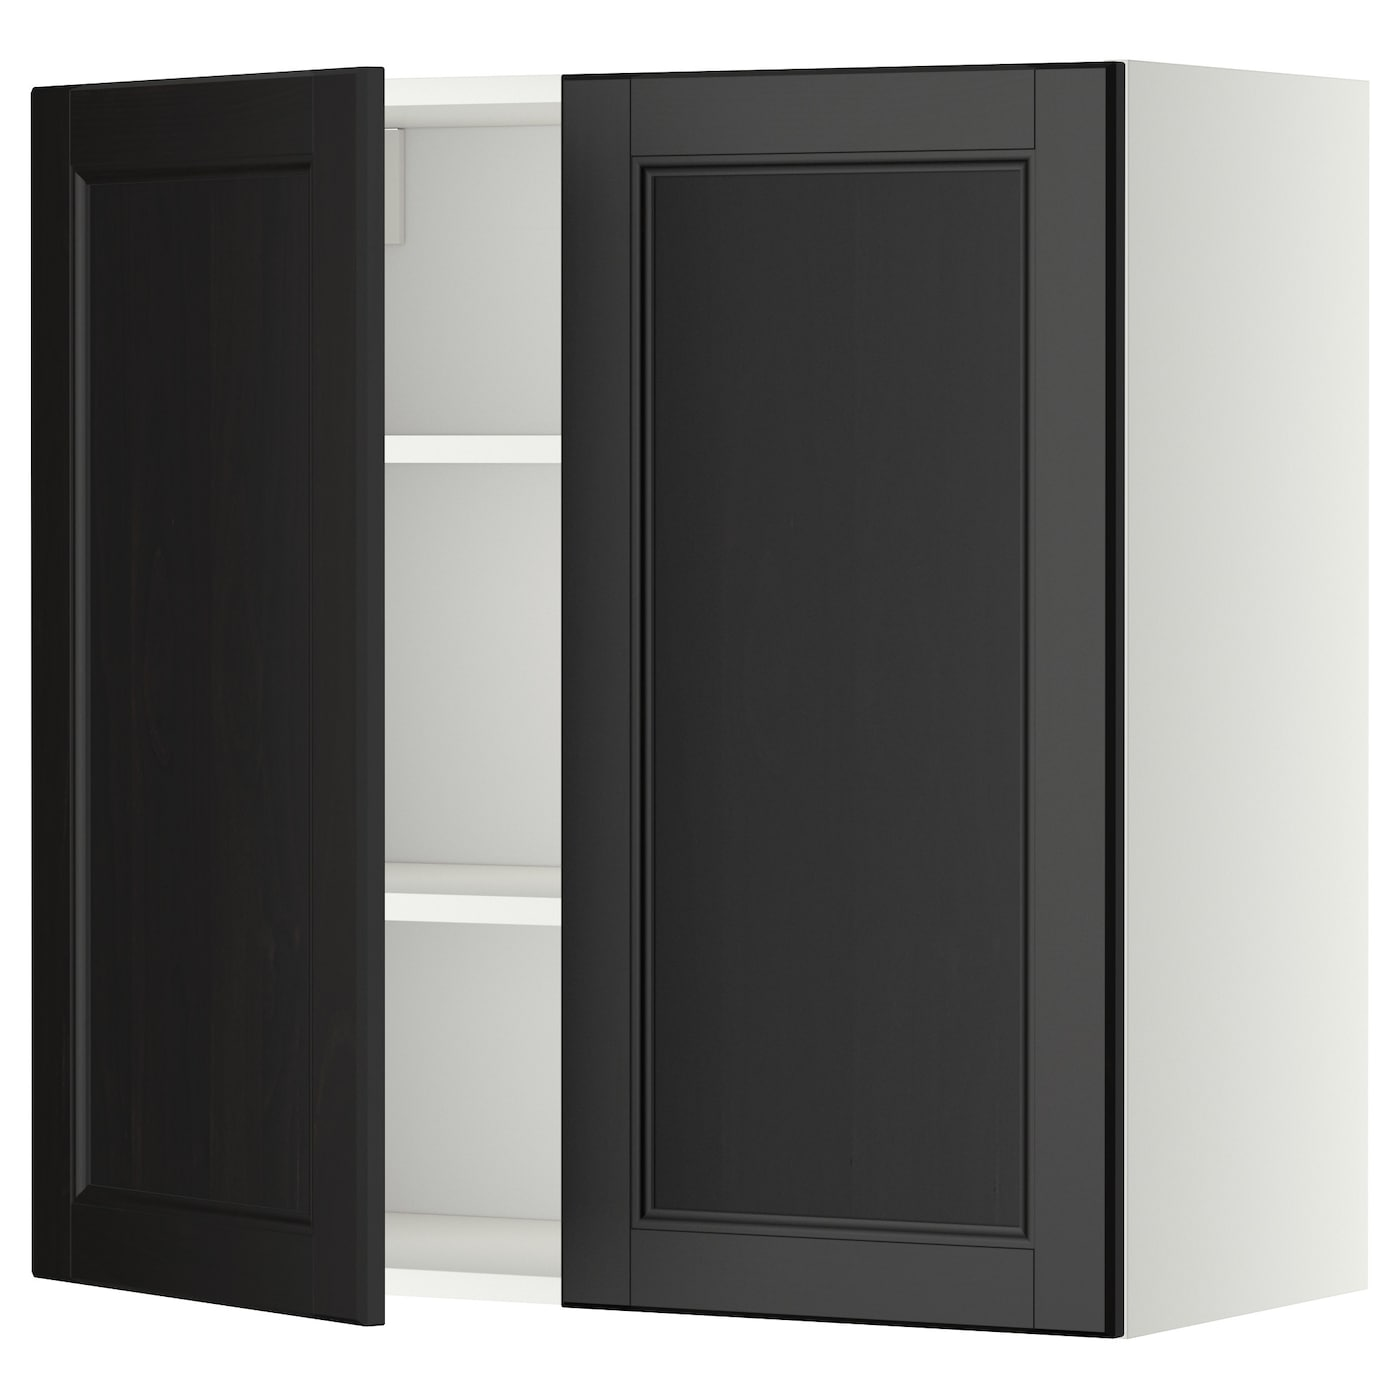 metod wall cabinet with shelves 2 doors white laxarby. Black Bedroom Furniture Sets. Home Design Ideas